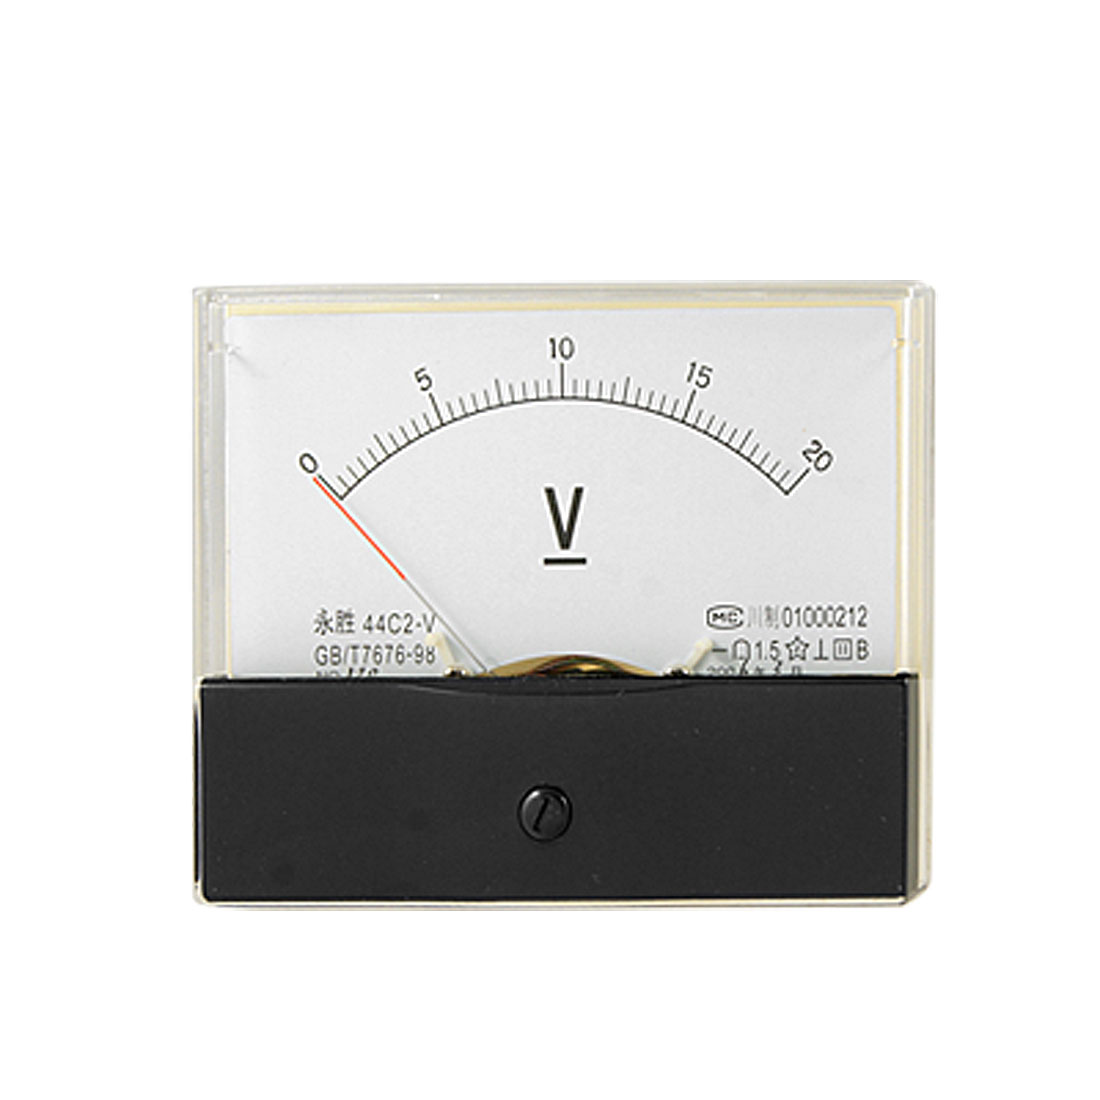 44C2 20V DC Voltage Panel Meter Analog Voltmeter Gauge